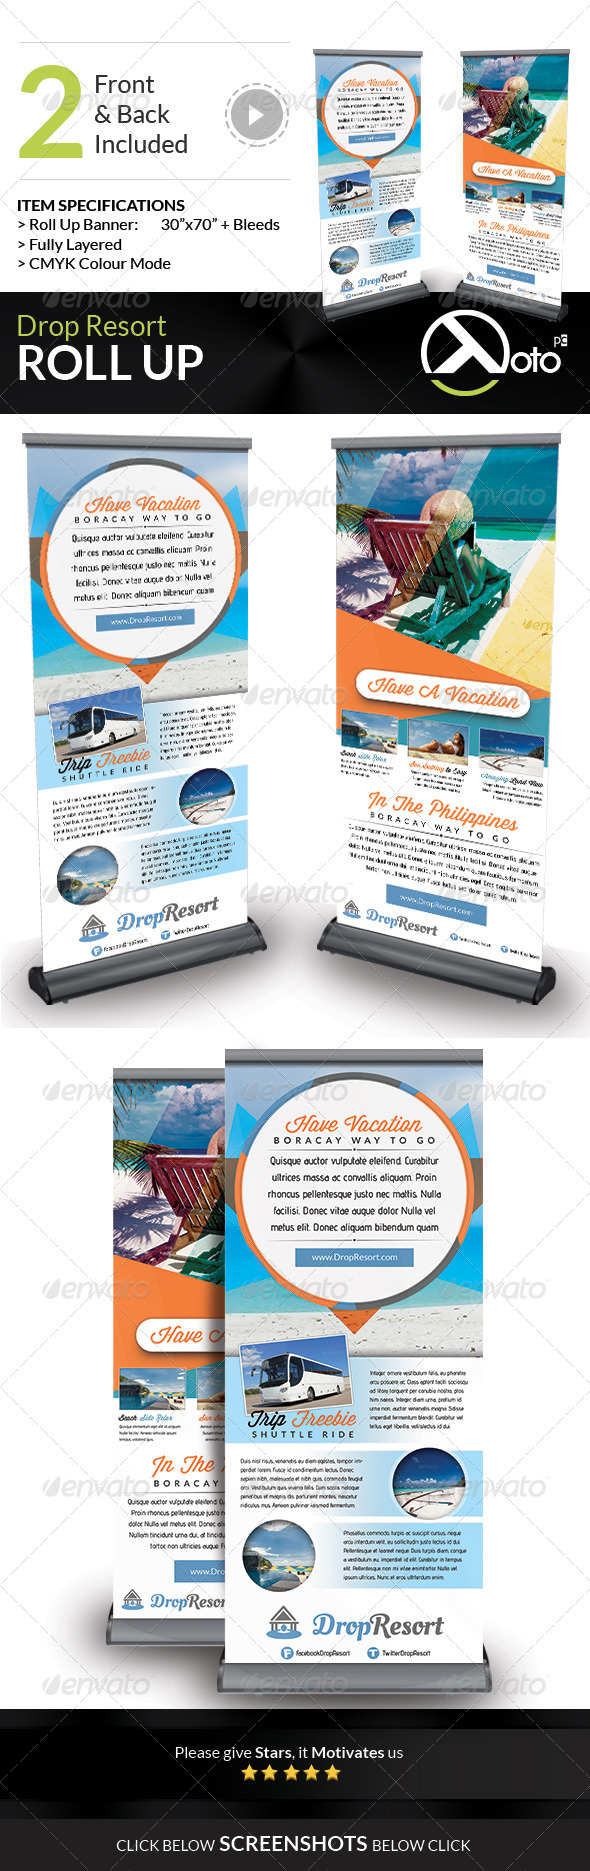 GraphicRiver Drop Beach Resort Vacation Trip Roll Up 7789200